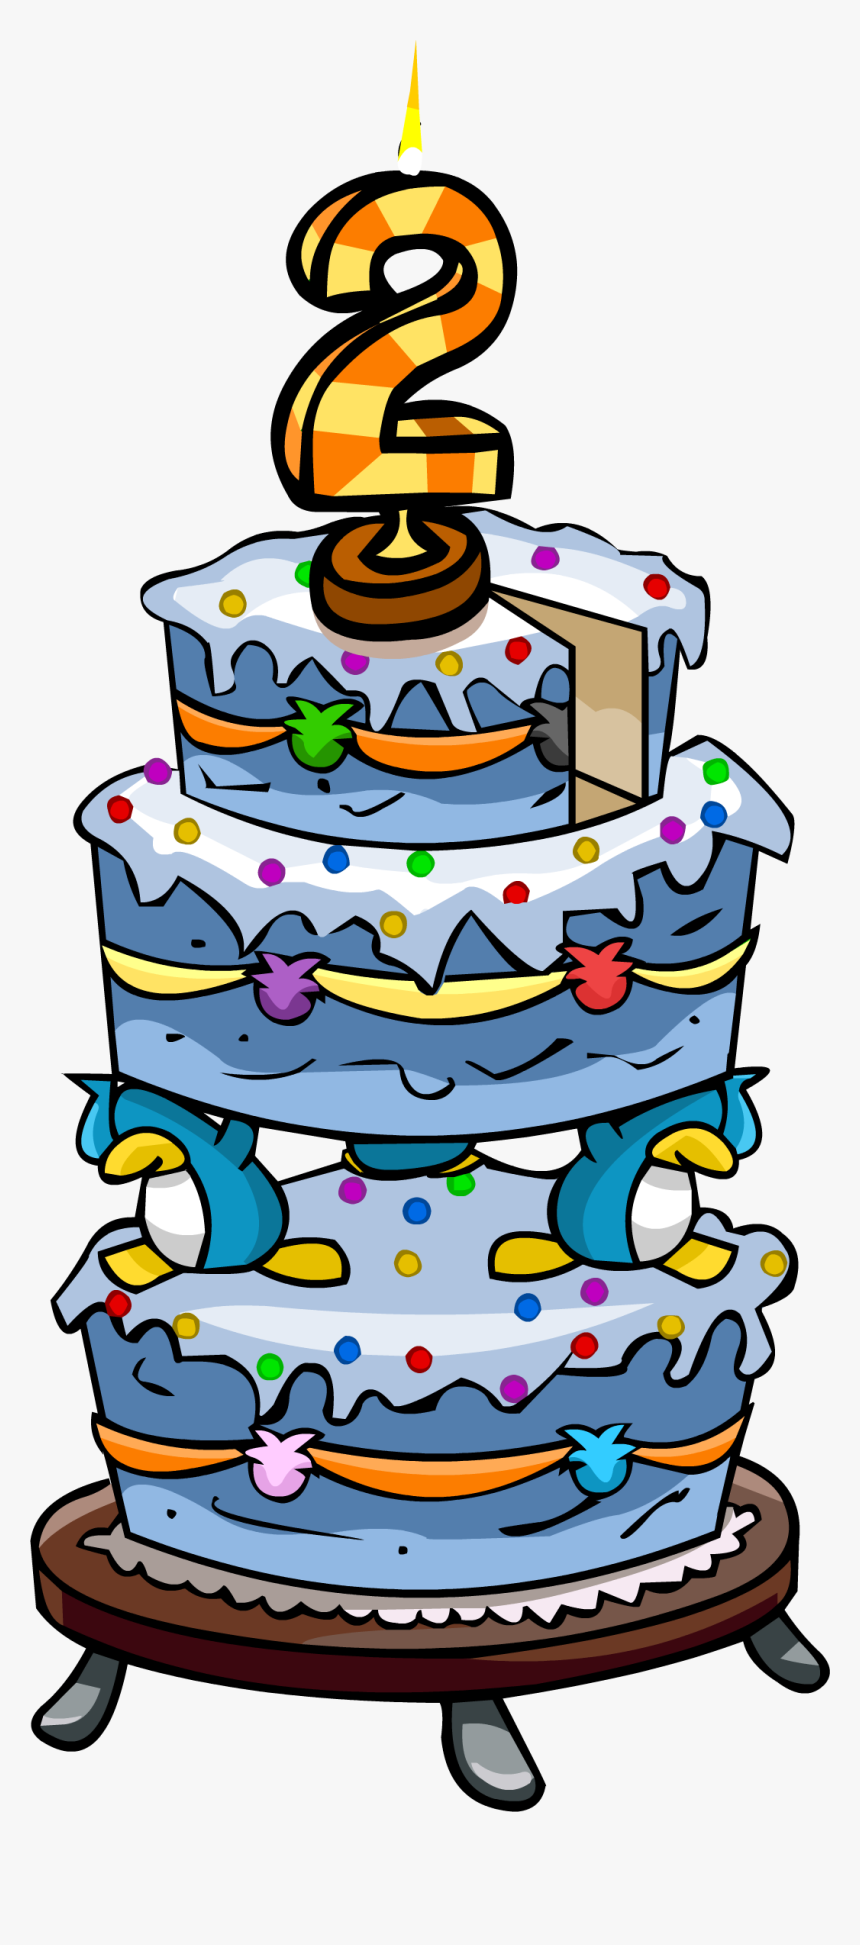 Stupendous 2Nd Anniversary Party Cake 2Nd Birthday Cake Png Transparent Funny Birthday Cards Online Inifodamsfinfo